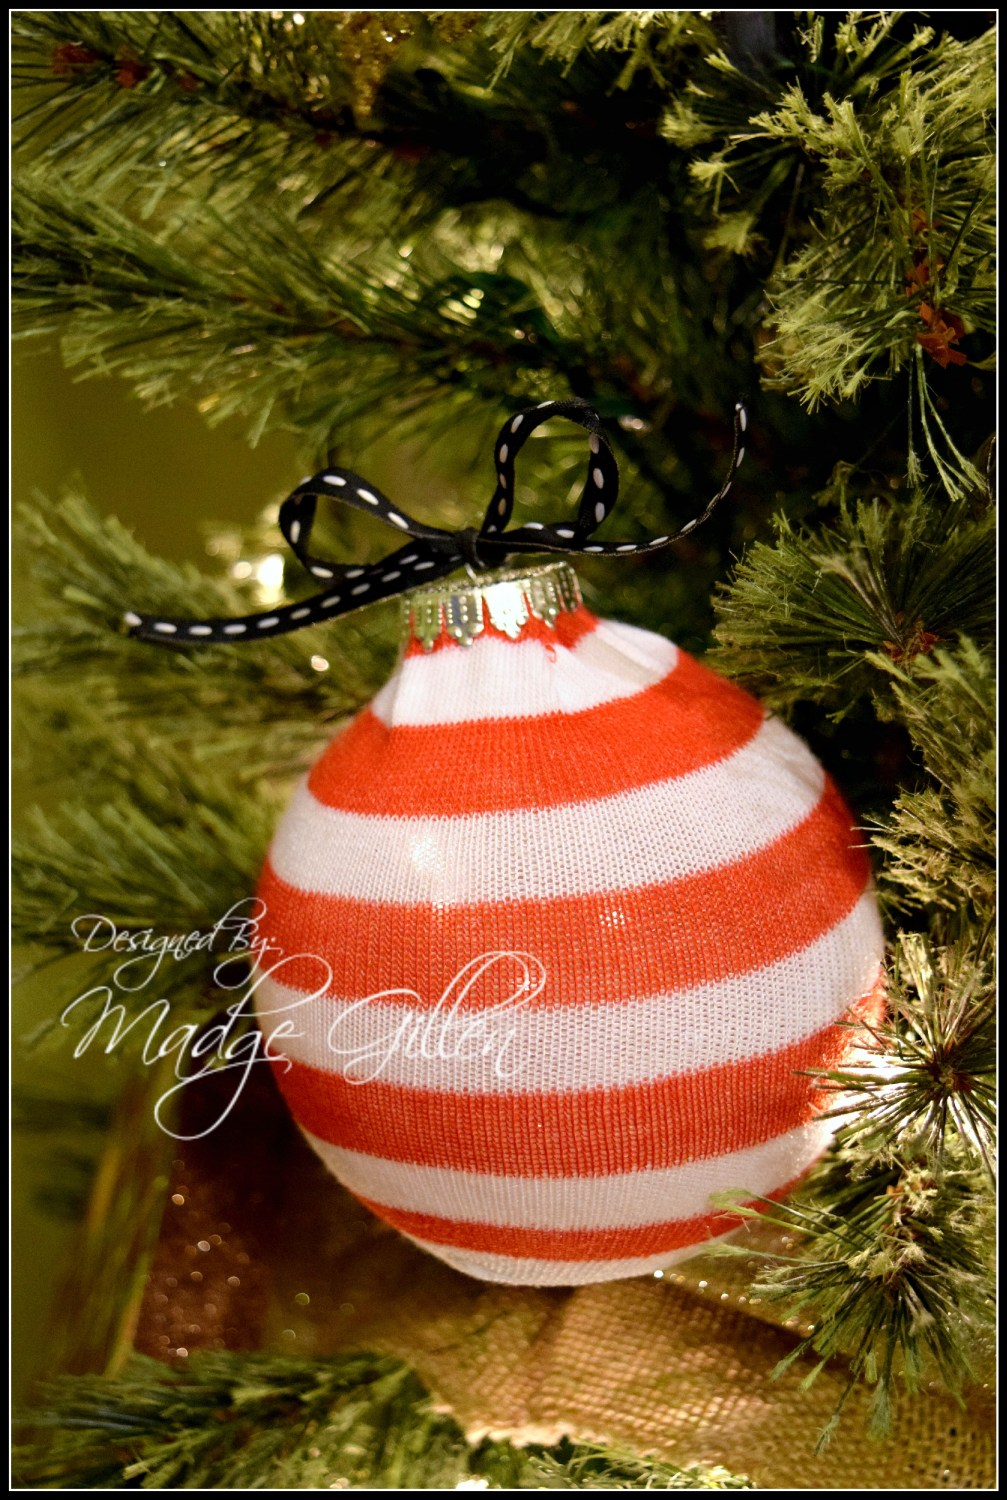 DIY Christmas Sock Ornament. MadgeGillen1